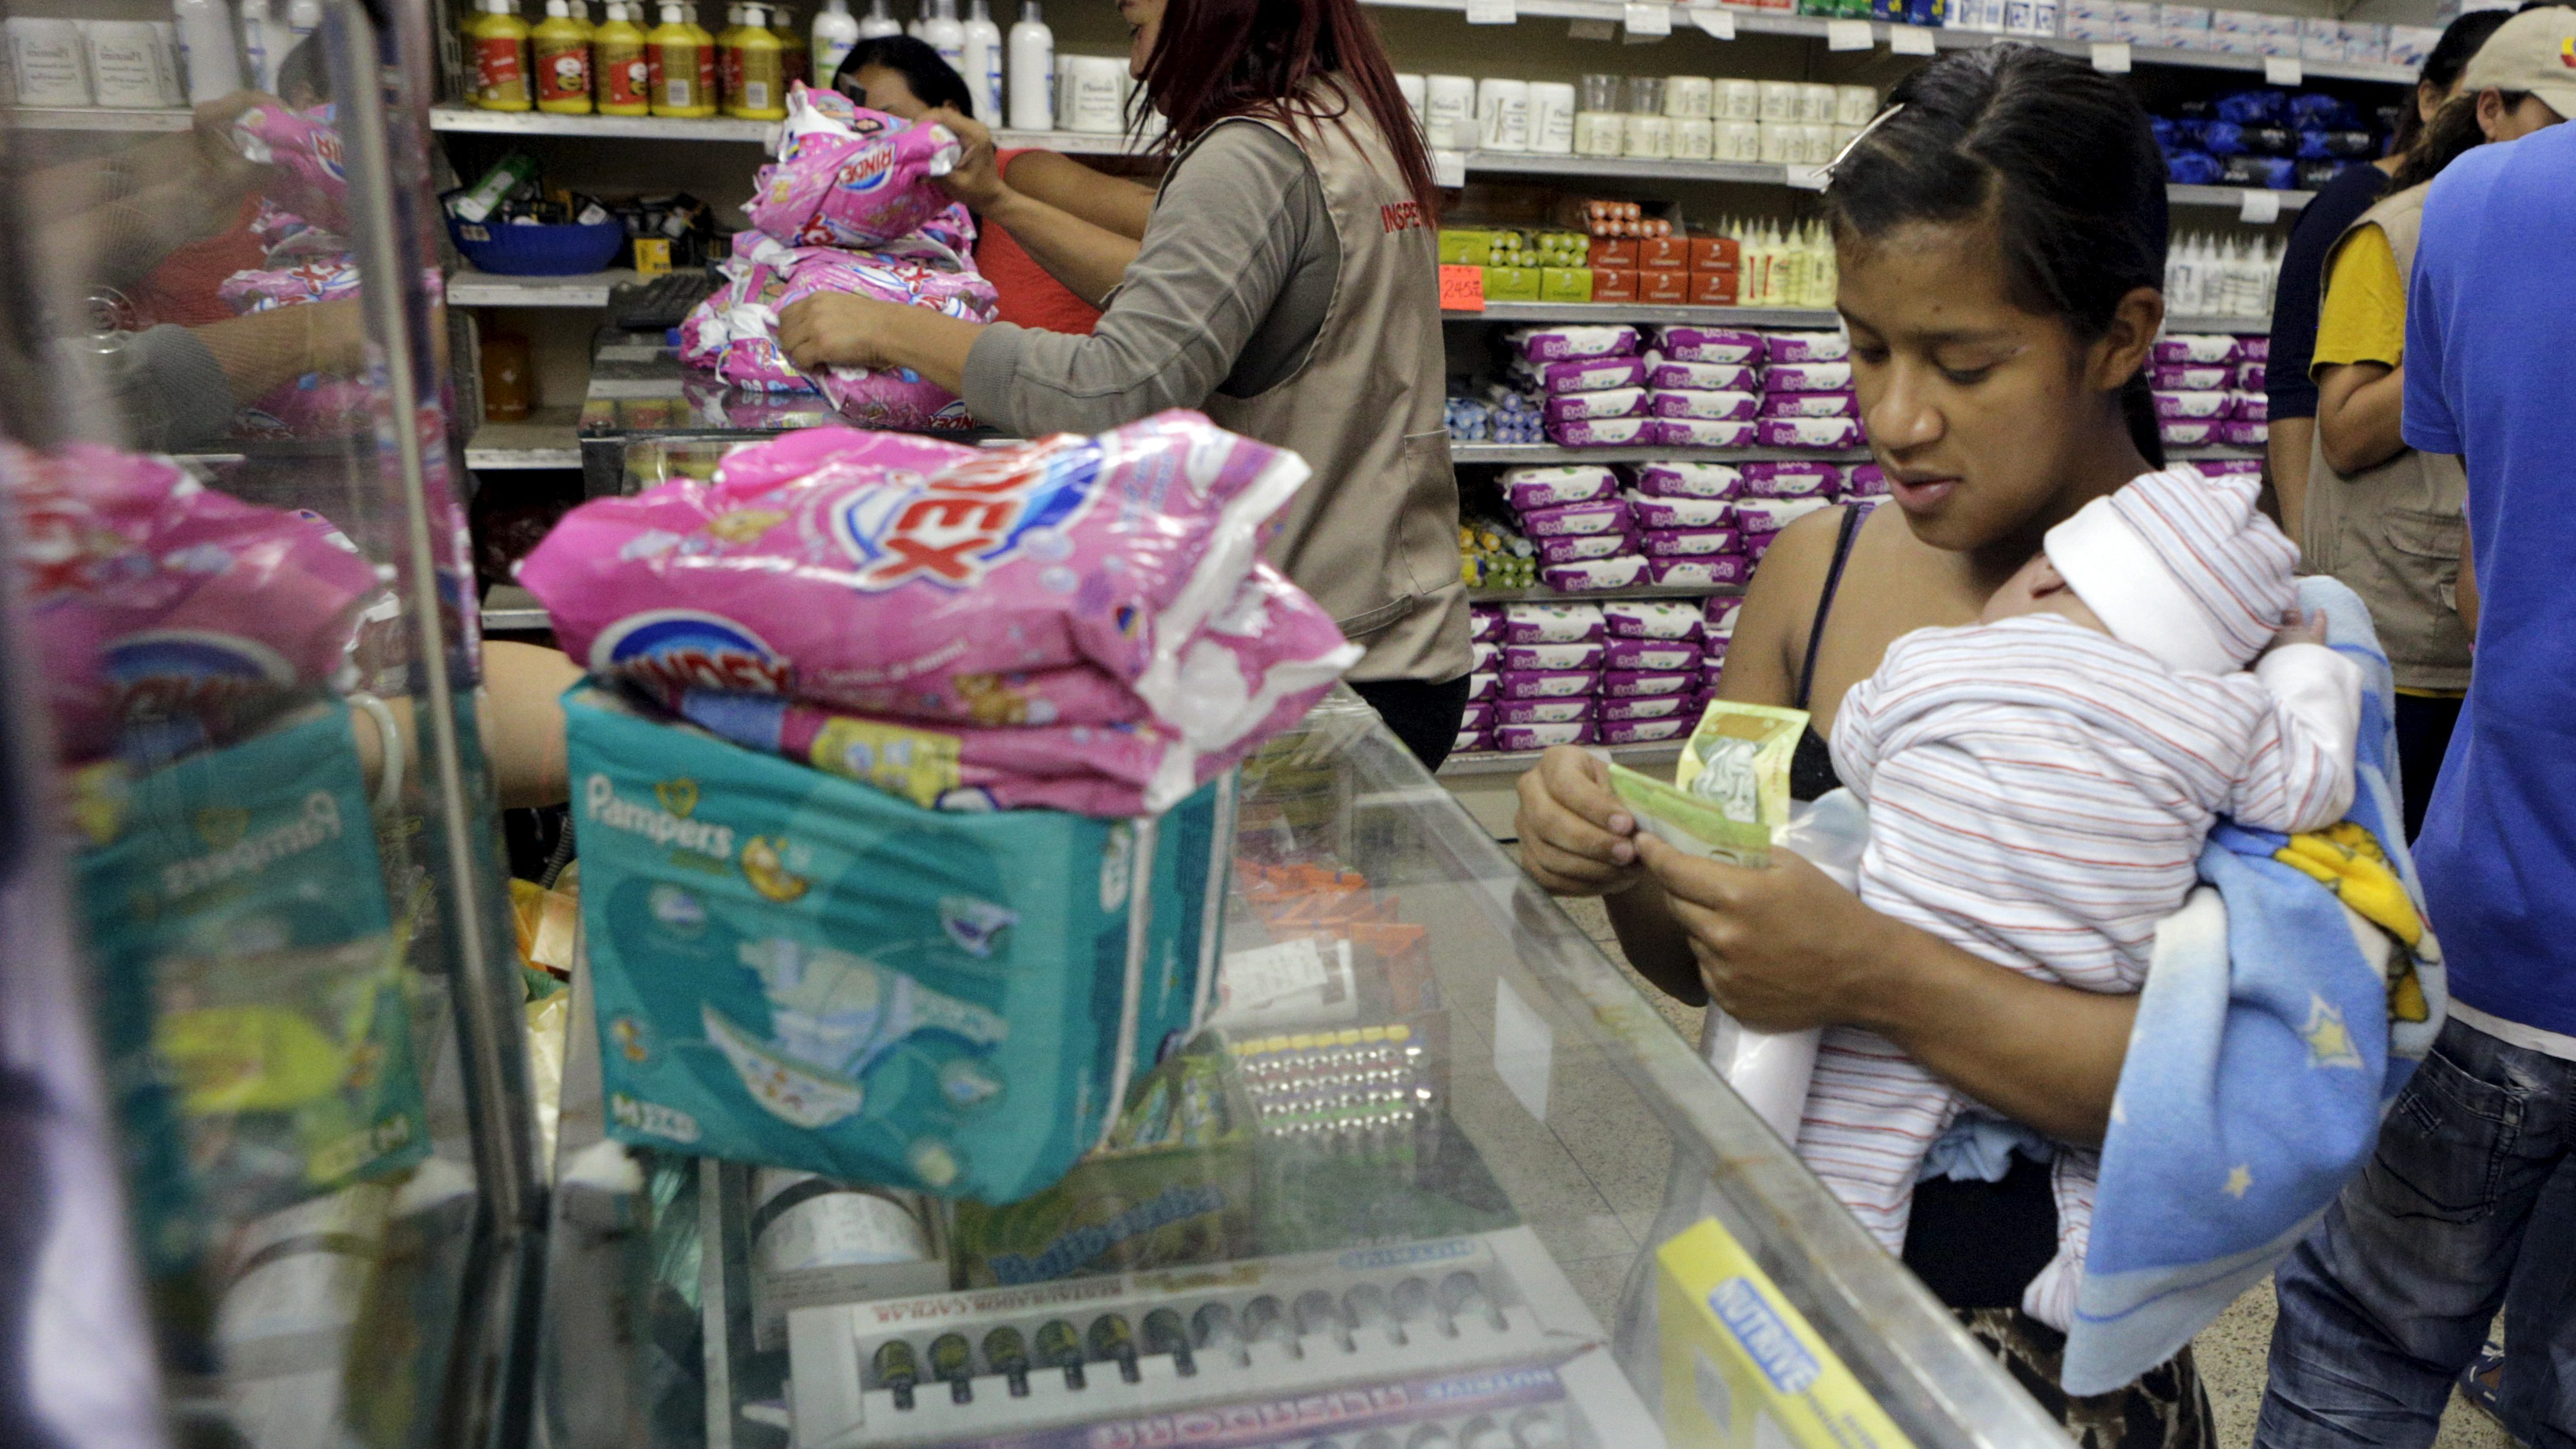 A woman carrying her 18-day-old baby counts bolivar notes as she buys diapers and laundry soap at a supermarket in Caracas